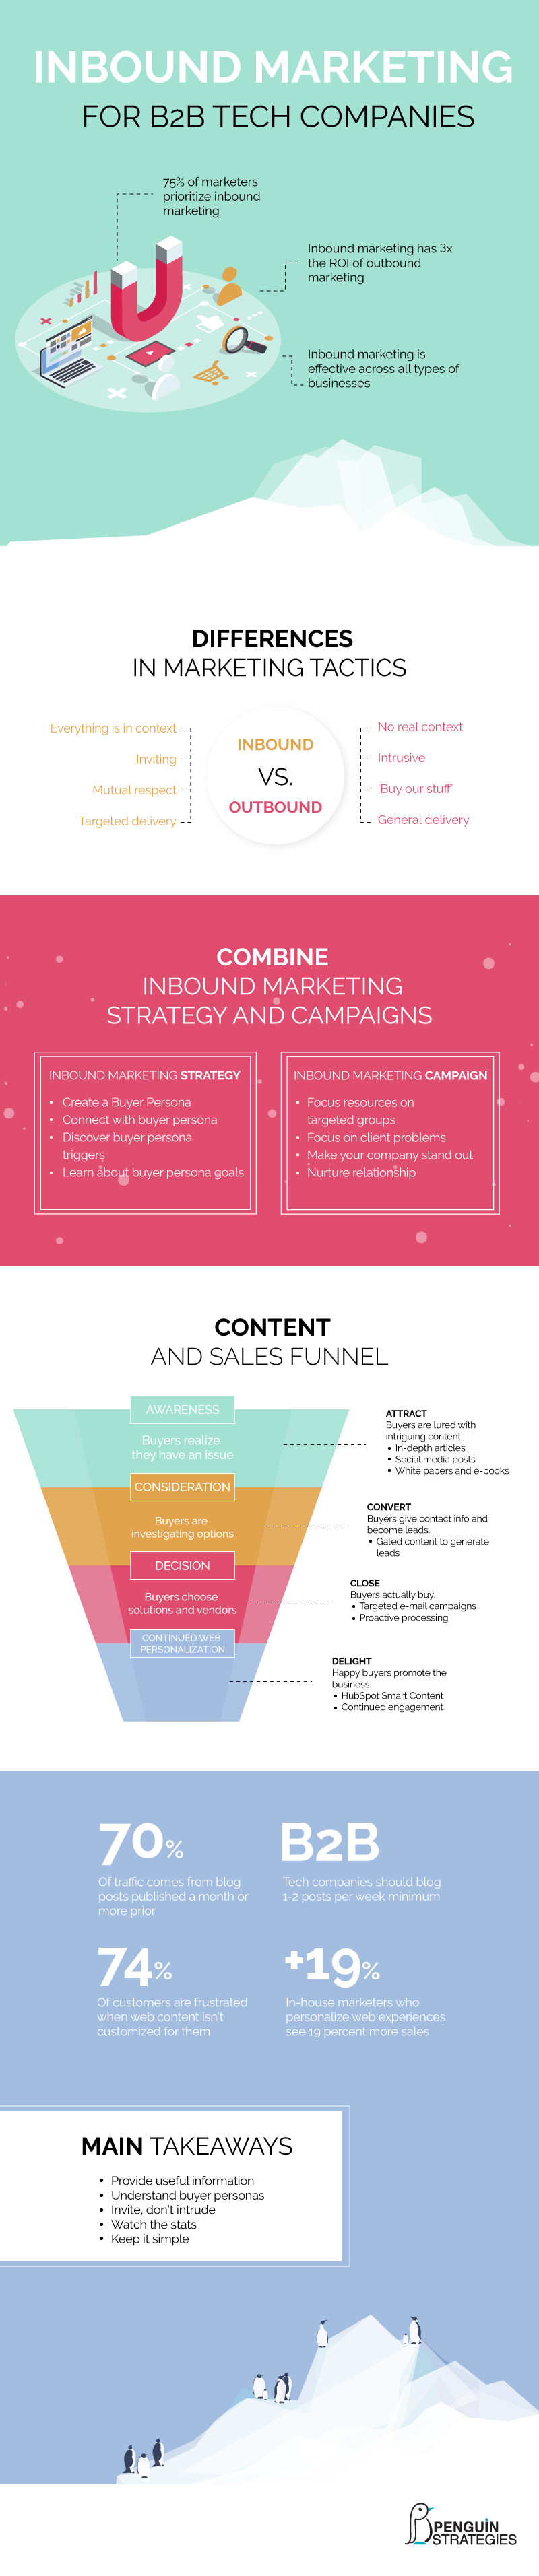 inbound marketing for B2B infographic